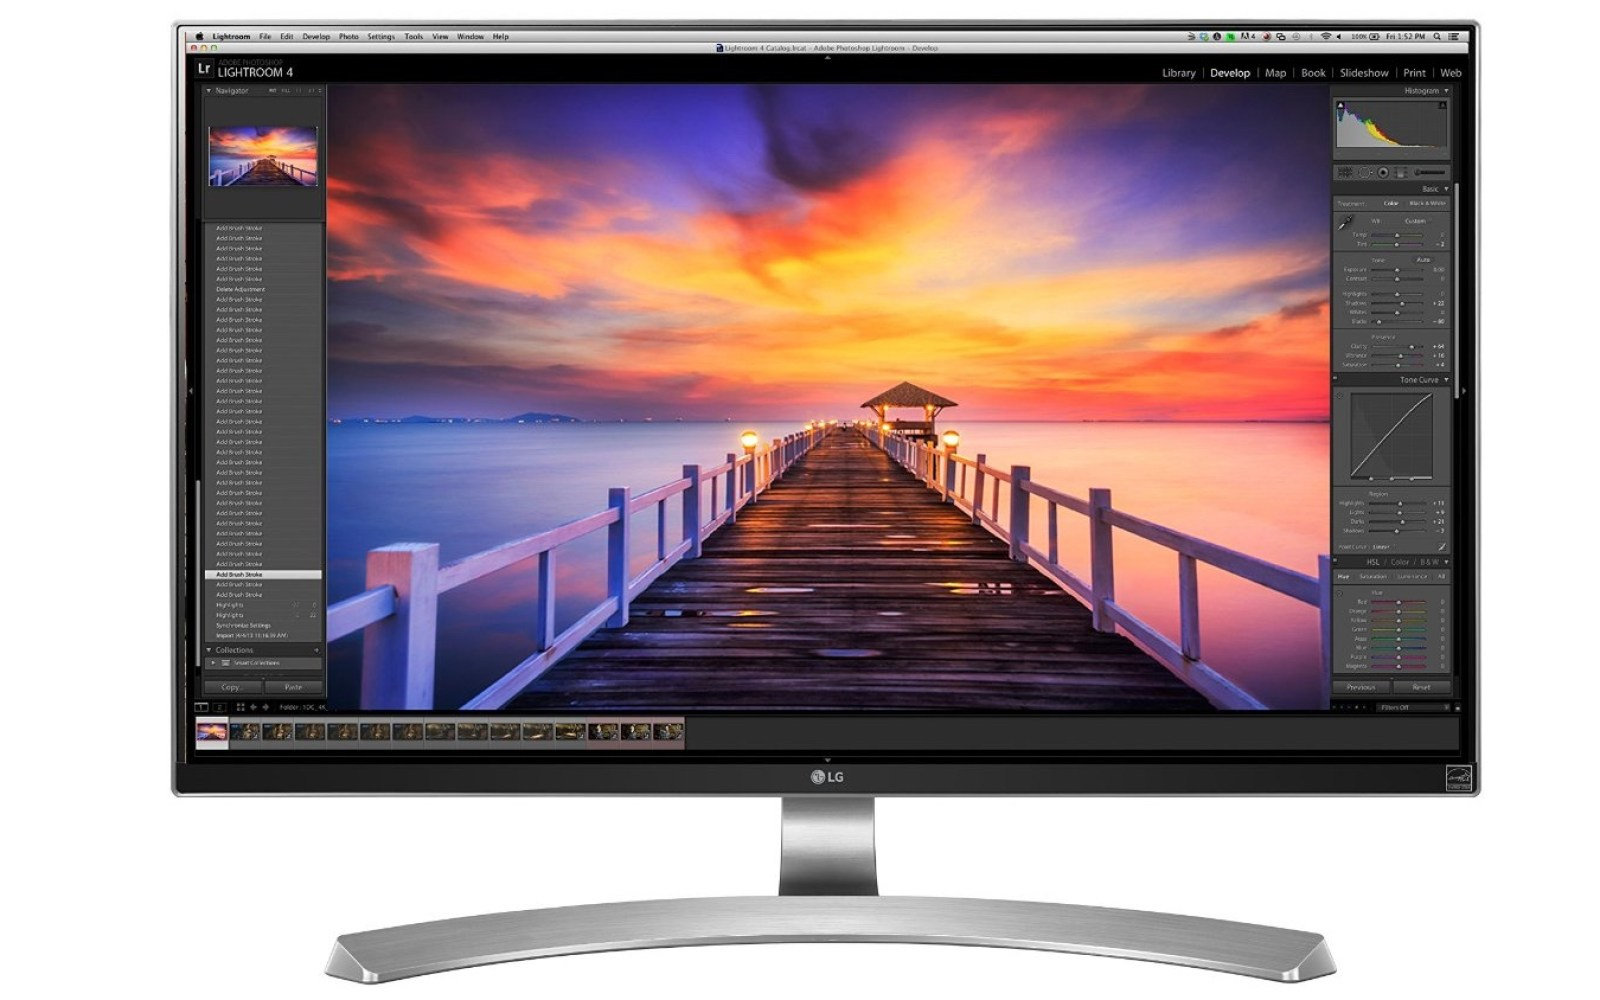 Apple's Thunderbolt Display has been put out to pasture, here are the best alternatives at every price point